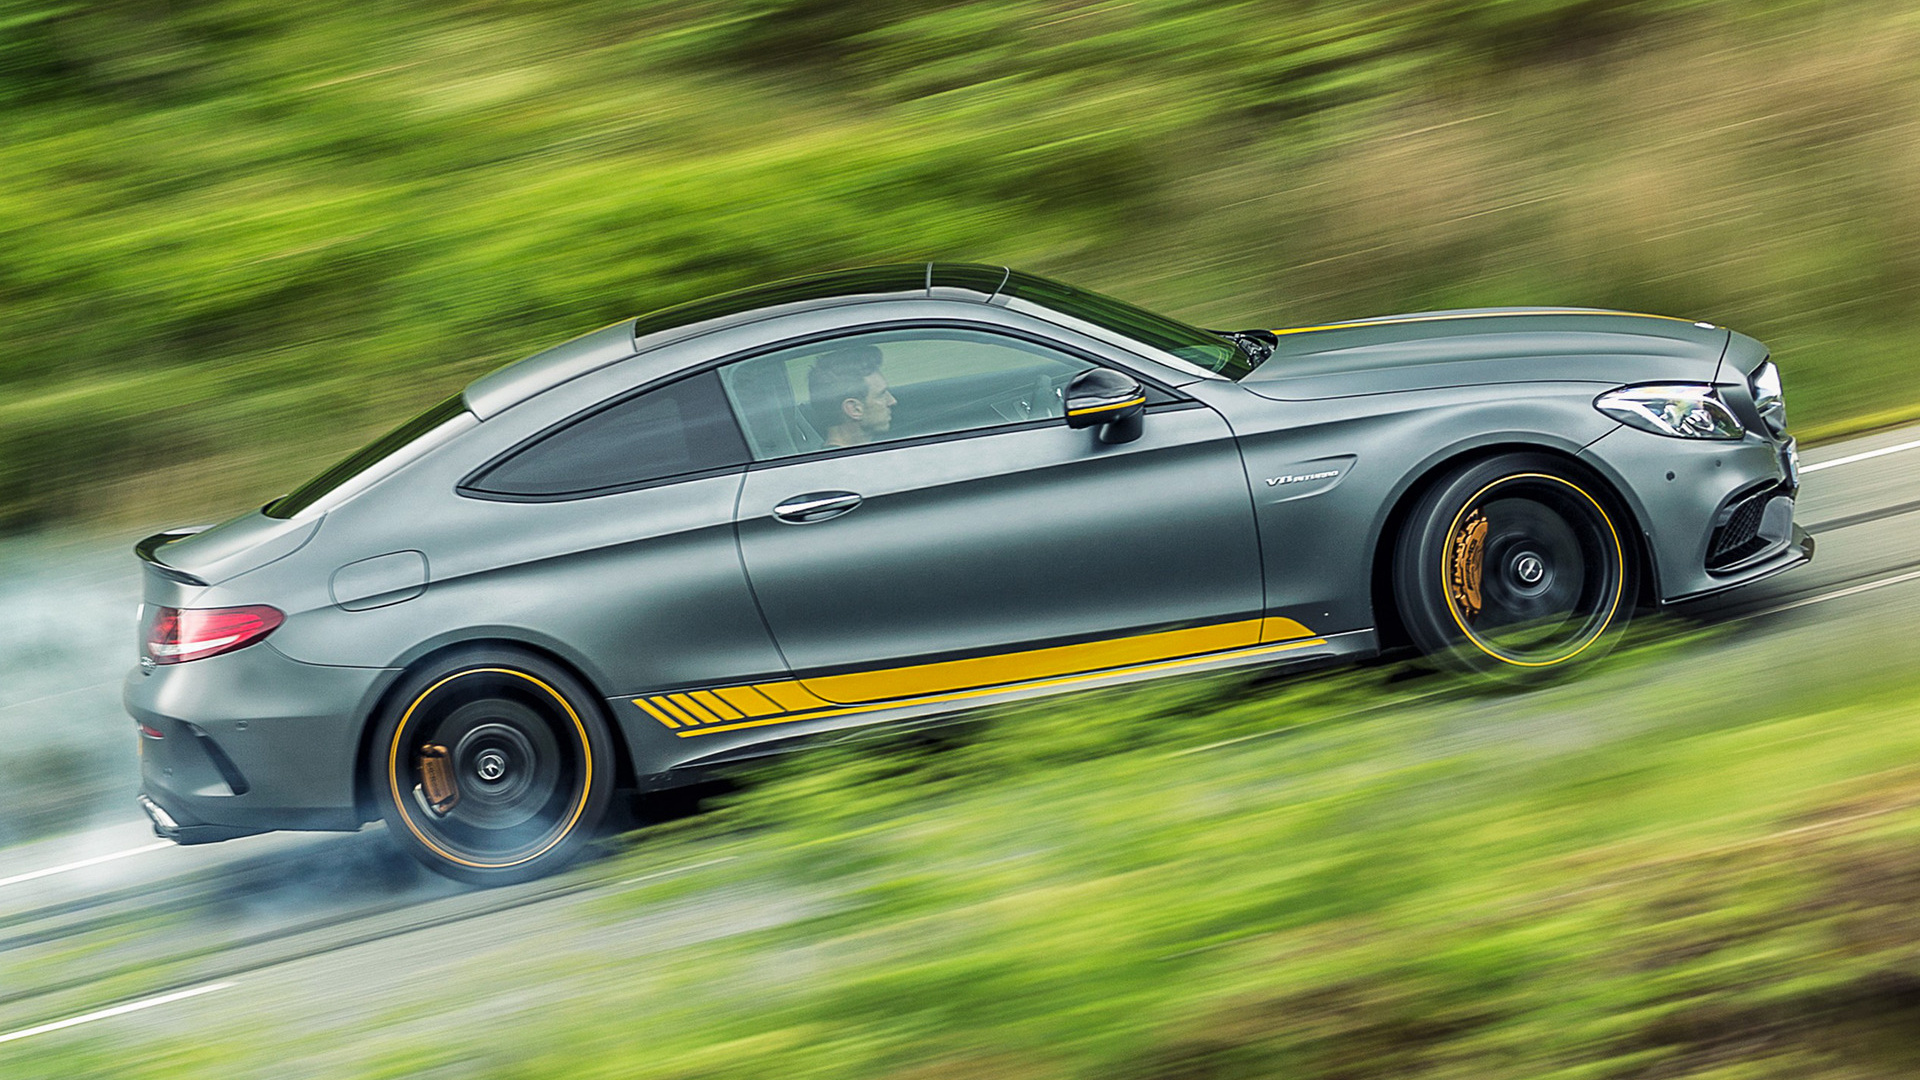 Mercedes amg c 63 s coupe edition 1 2016 wallpapers and hd images - Mercedes Amg C 63 S Coupe Edition 1 2016 Uk Thumbnail 49623 49623 Hd 16 9